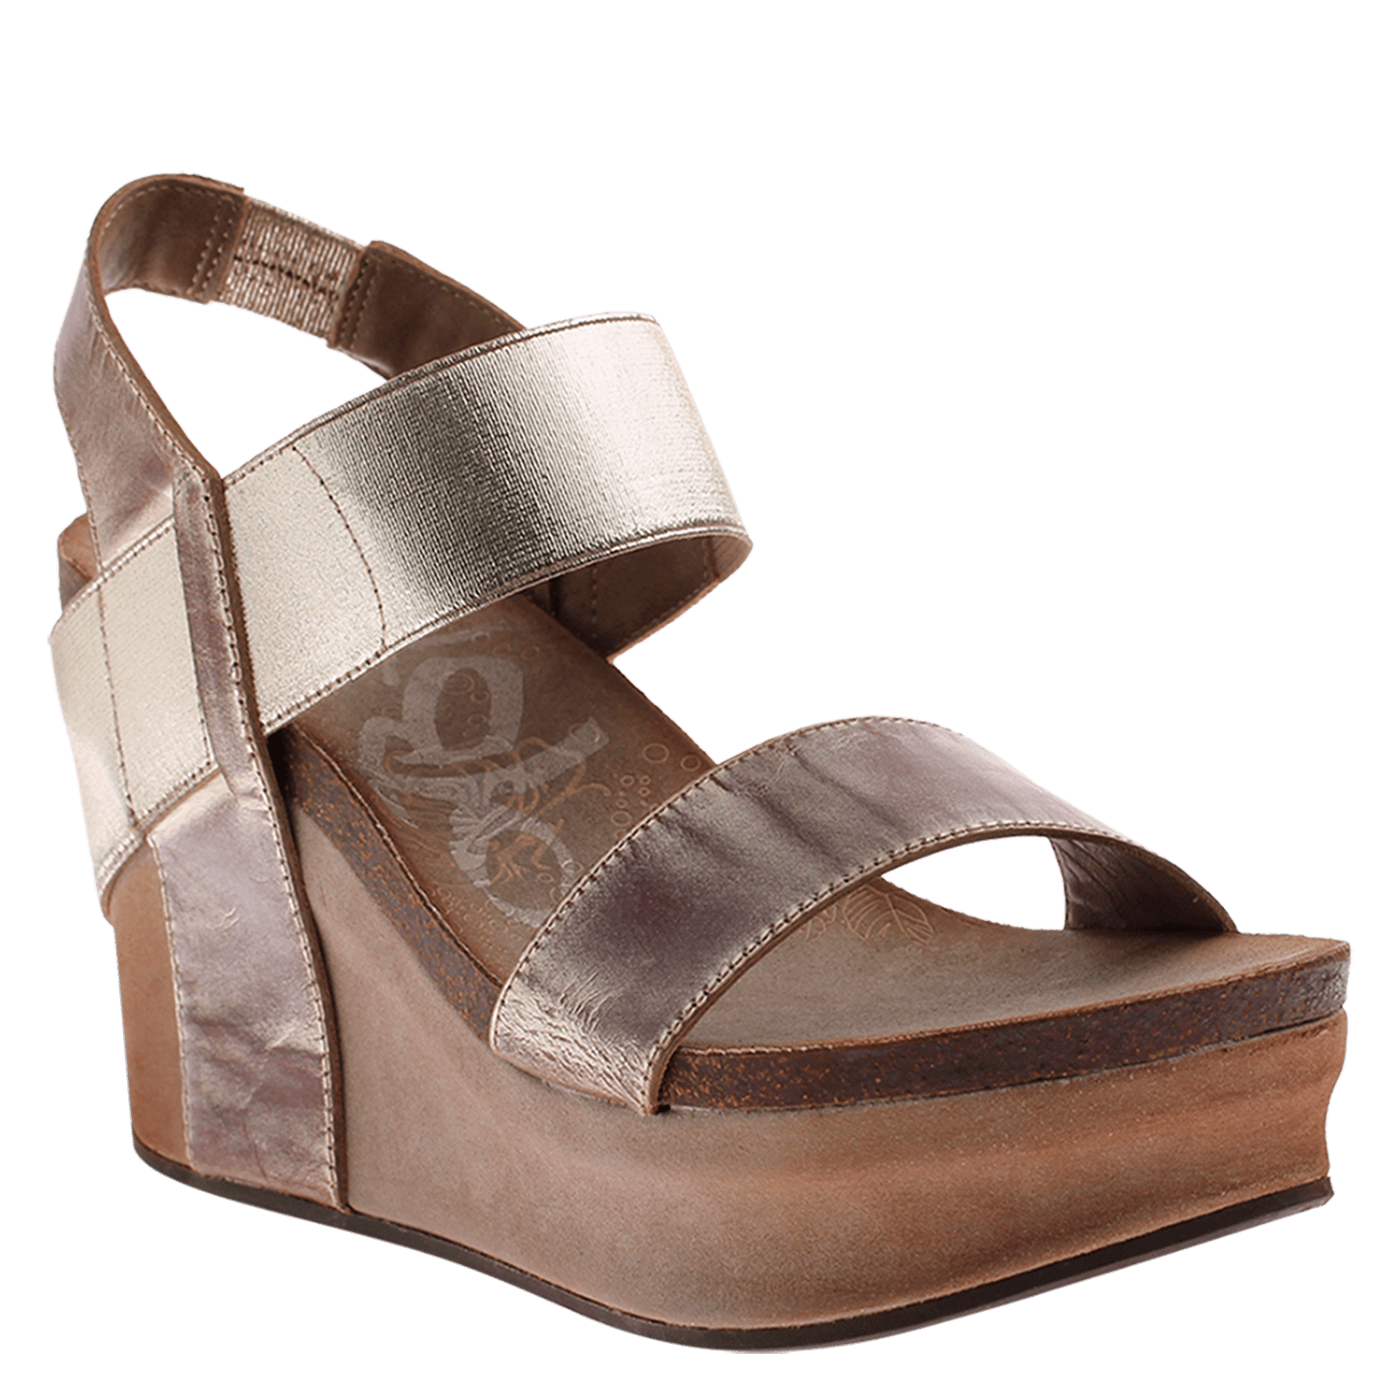 787c6a2792f Bushnell in Gold Wedge Sandals